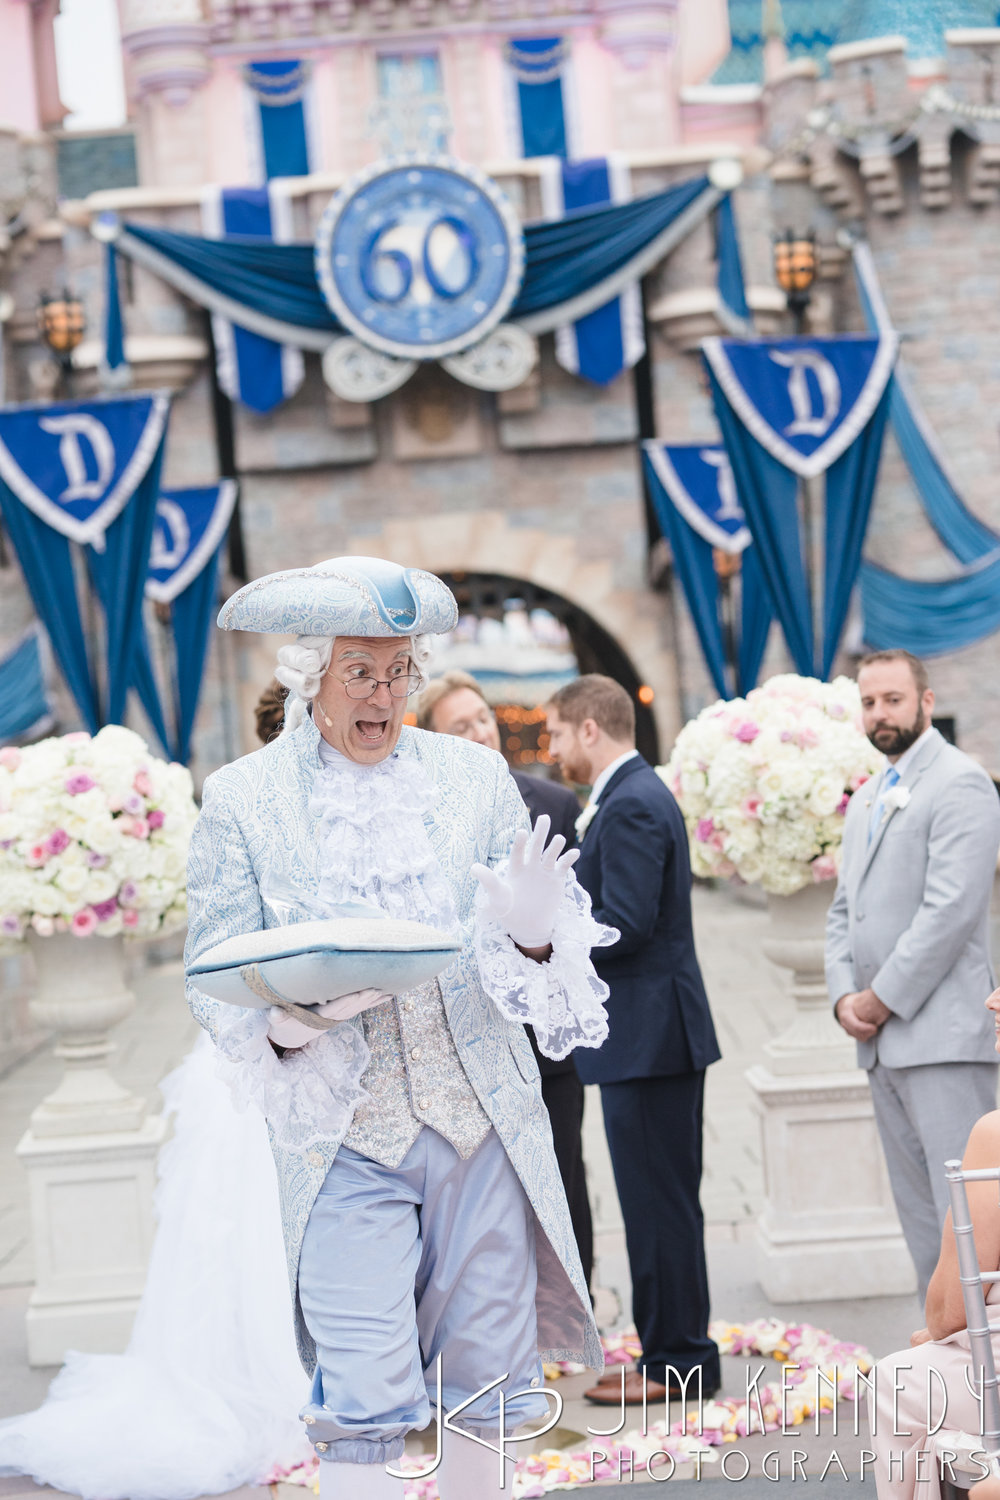 disney_wedding_aug_31_2016_1342.jpg